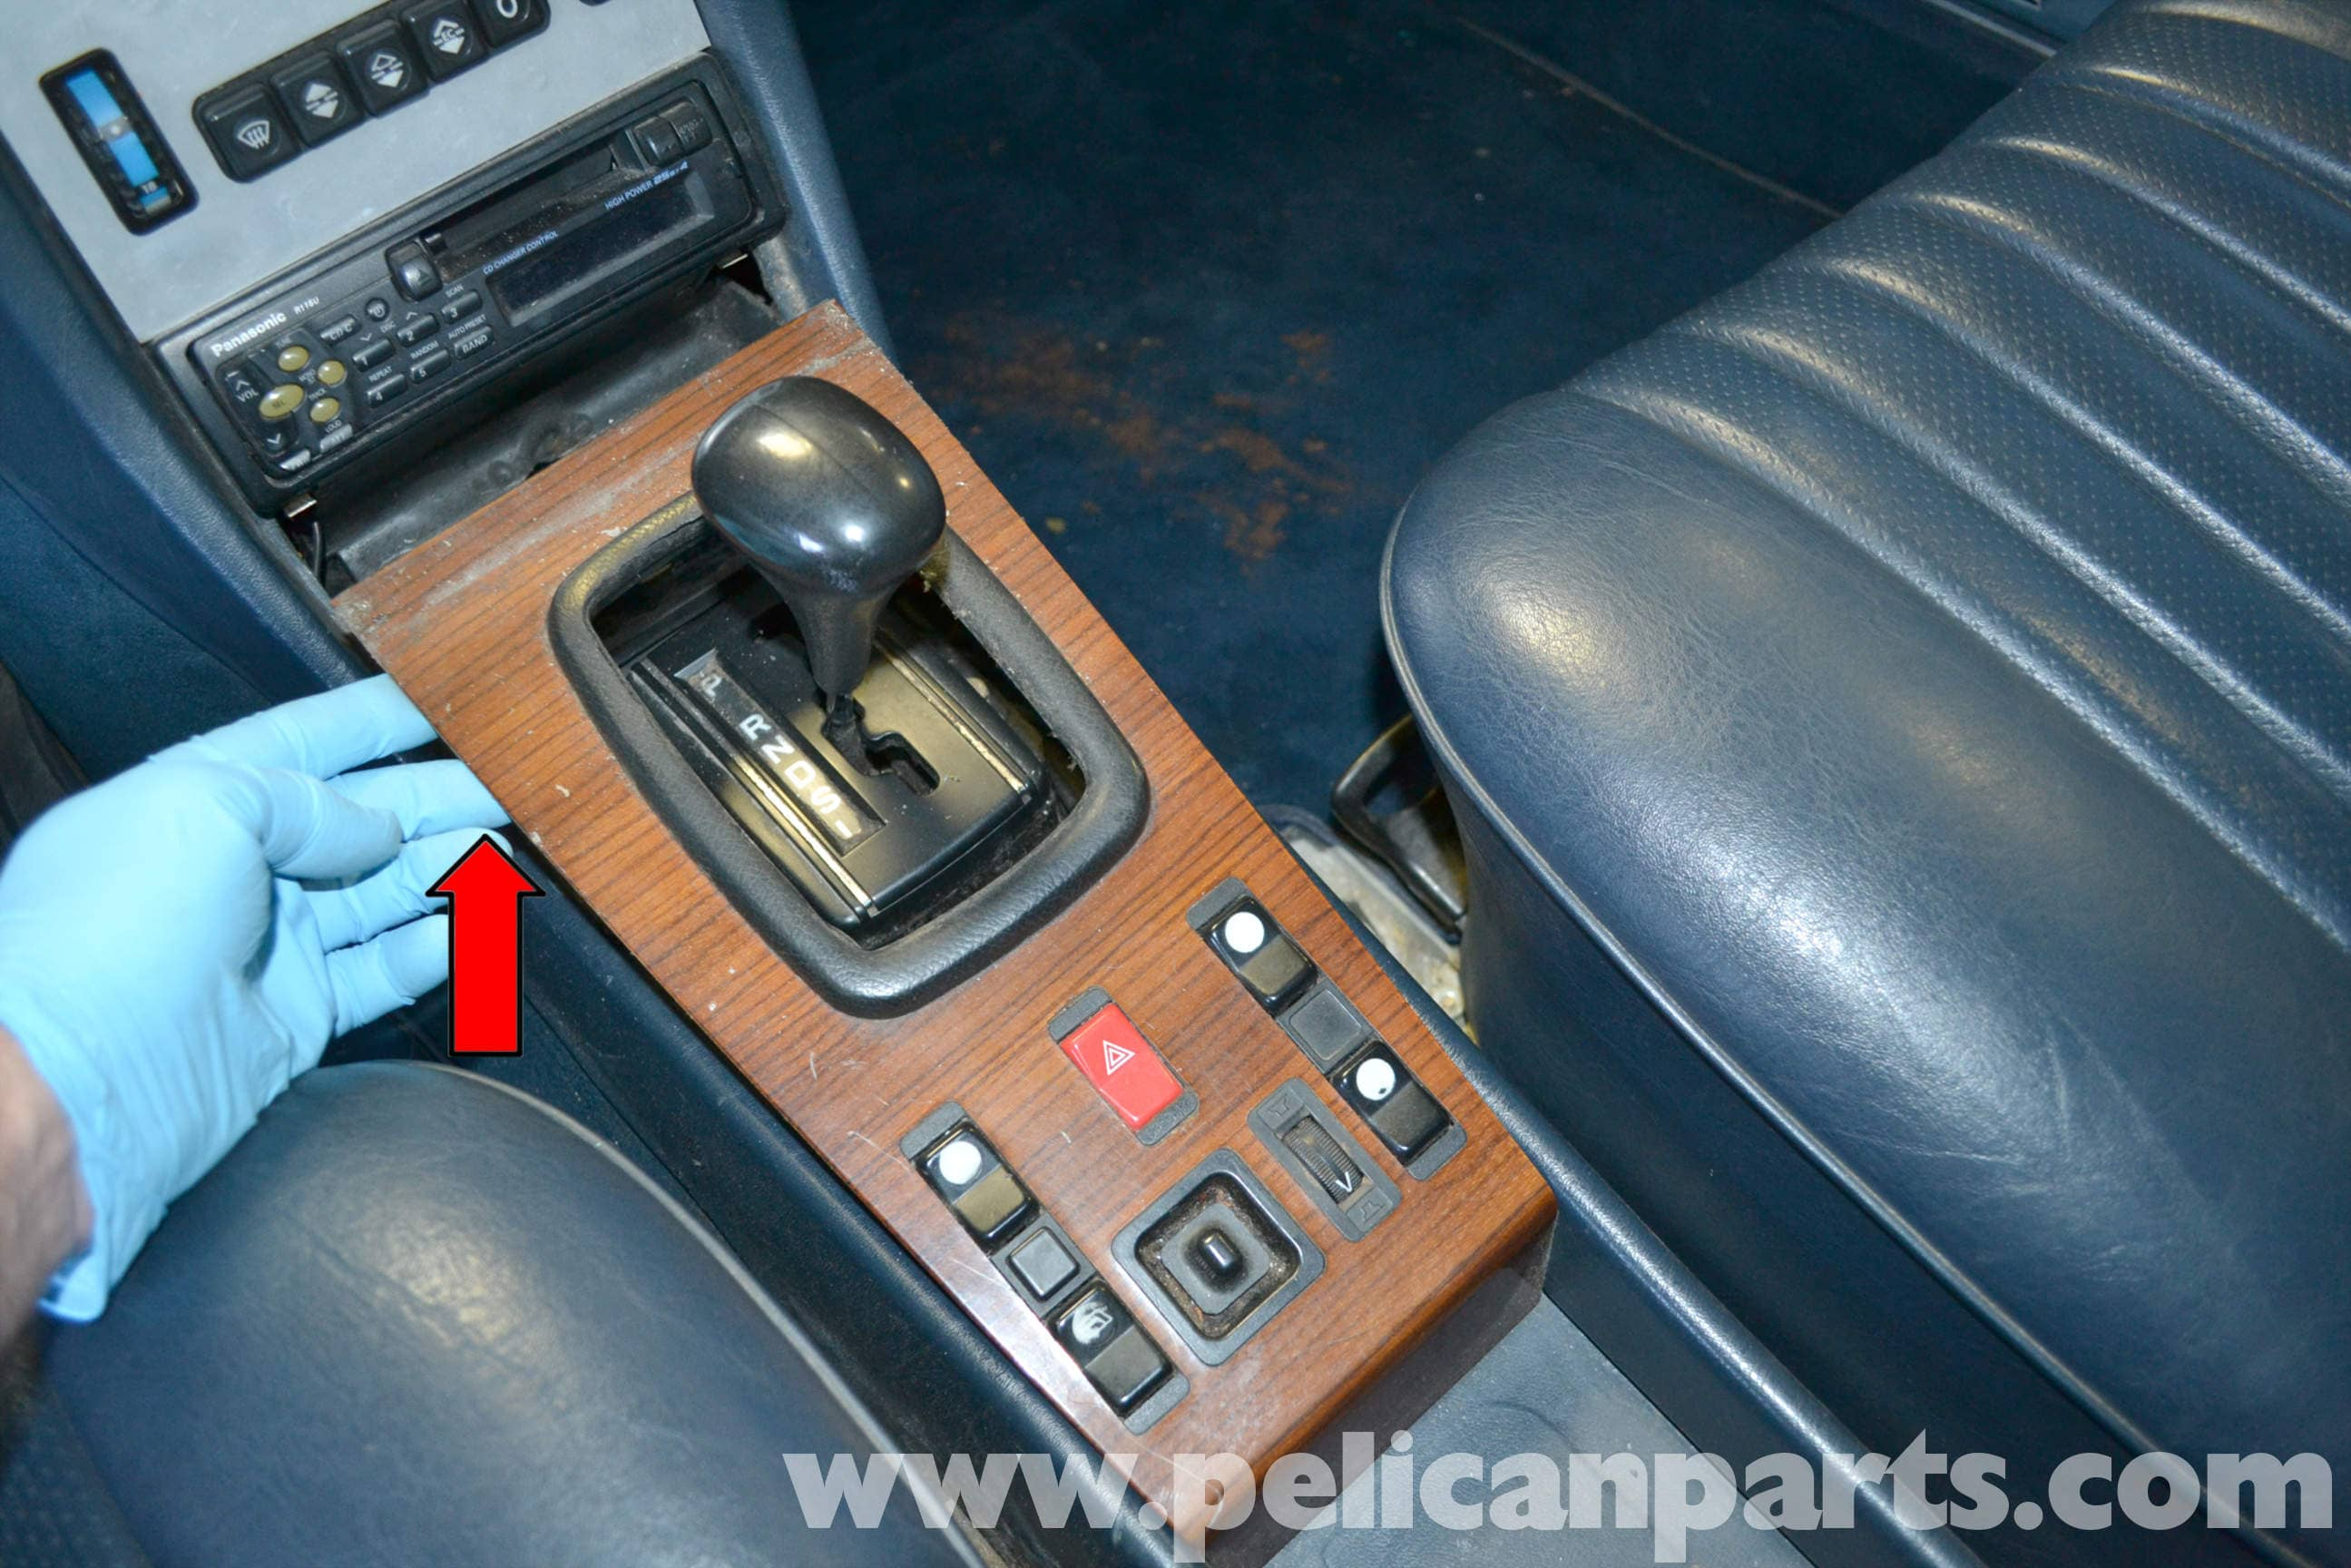 Mercedes benz w123 shift knob replacement w123 1977 for Mercedes benz shift knob replacement